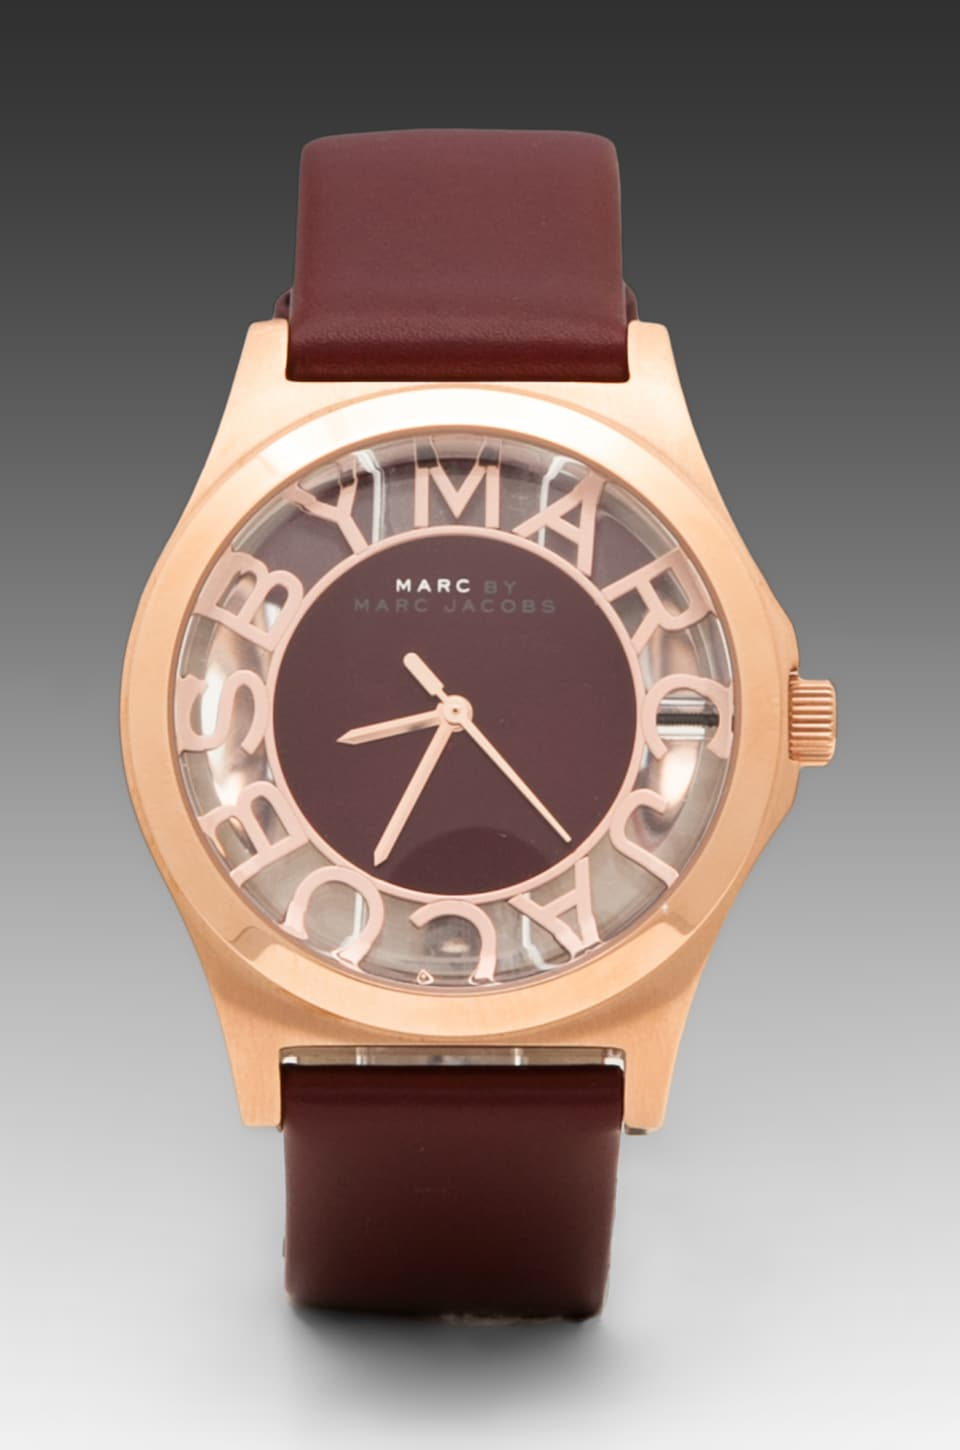 Marc by Marc Jacobs Henry Skeleton Watch in Oxblood/Rosegold